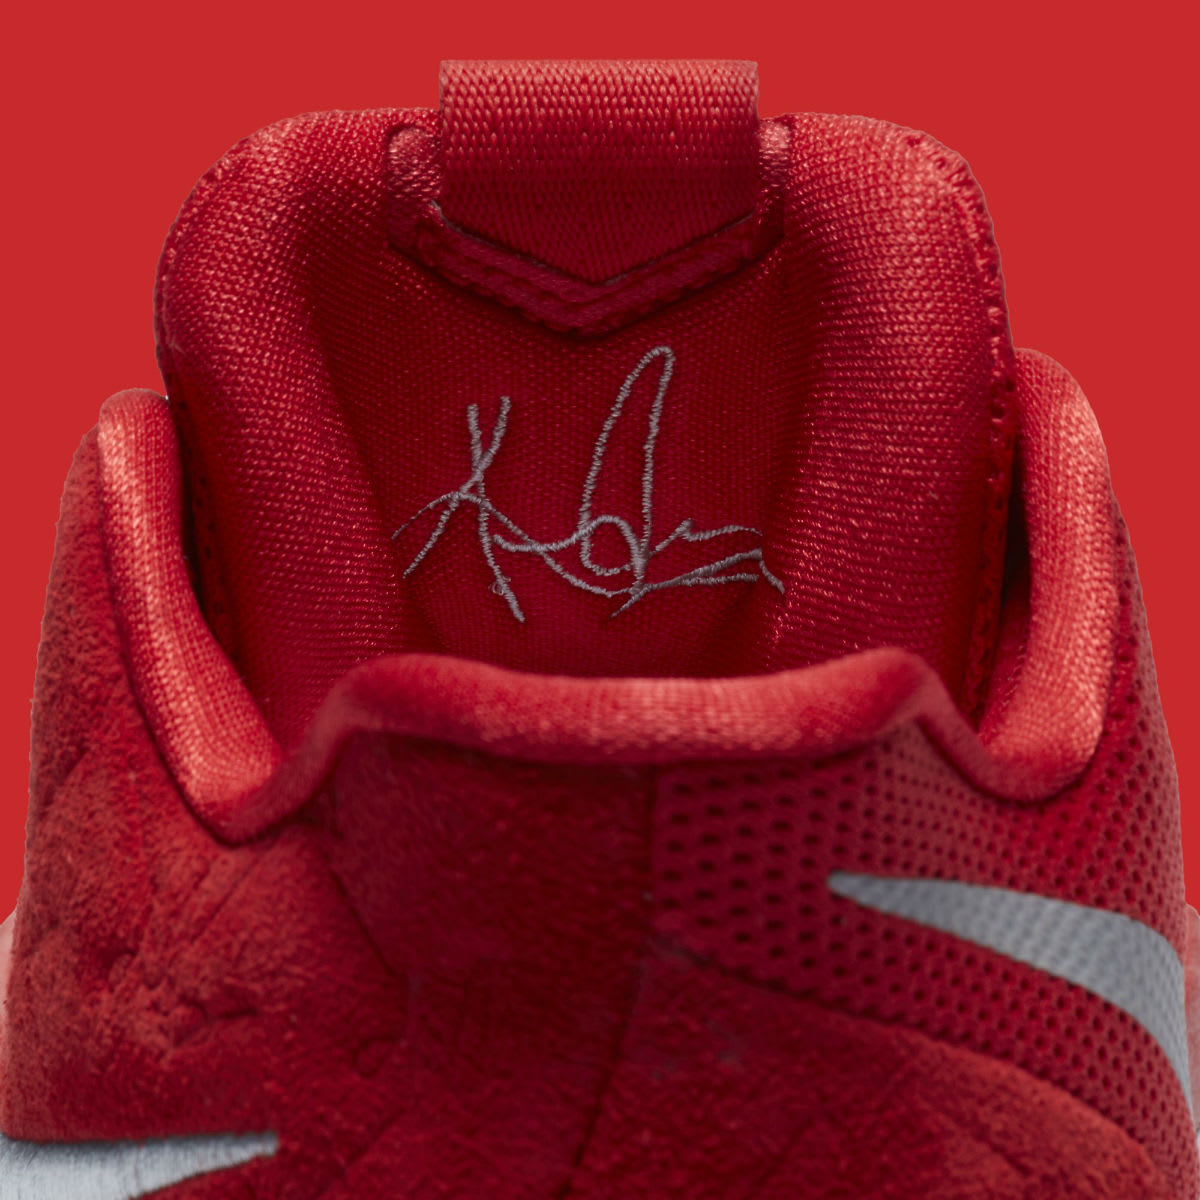 5e0d99e4ef8c3 ... shop nike kyrie 3 university red release date tongue 852395 601 8f86b  50a06